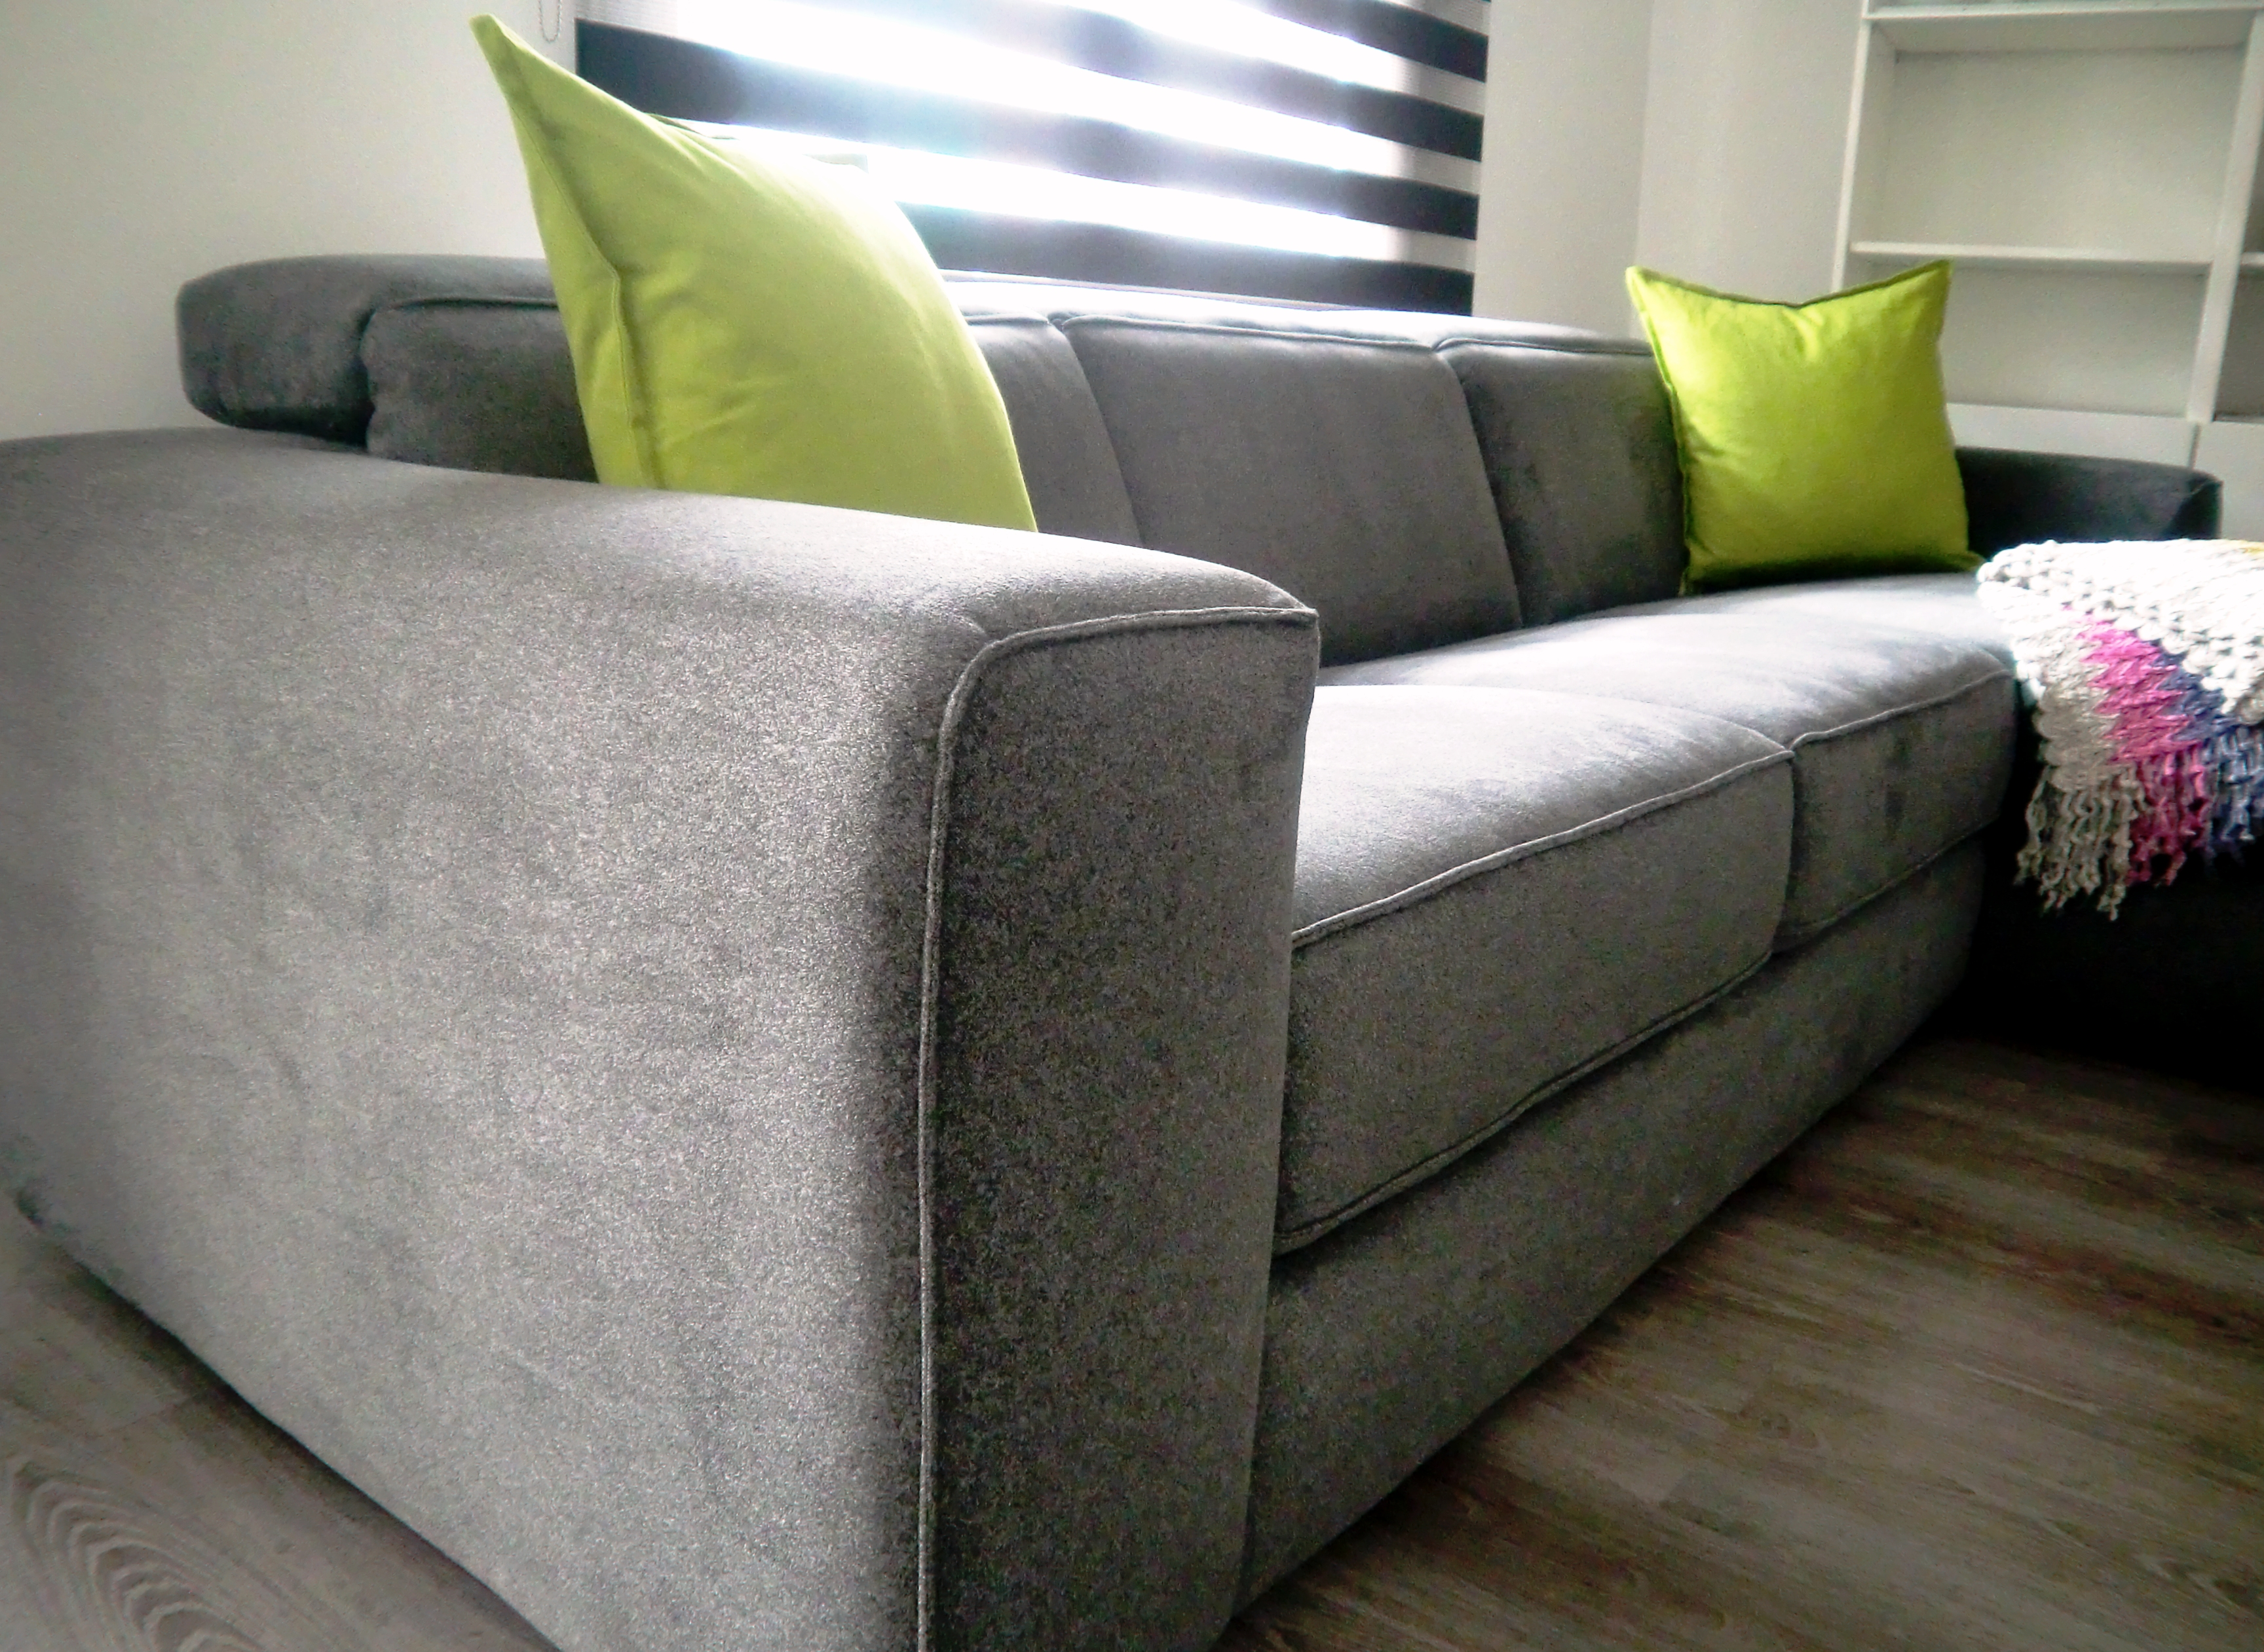 Cojines Sofa Cojines Ikea Para Sofas Great Imagen With Cojines Ikea